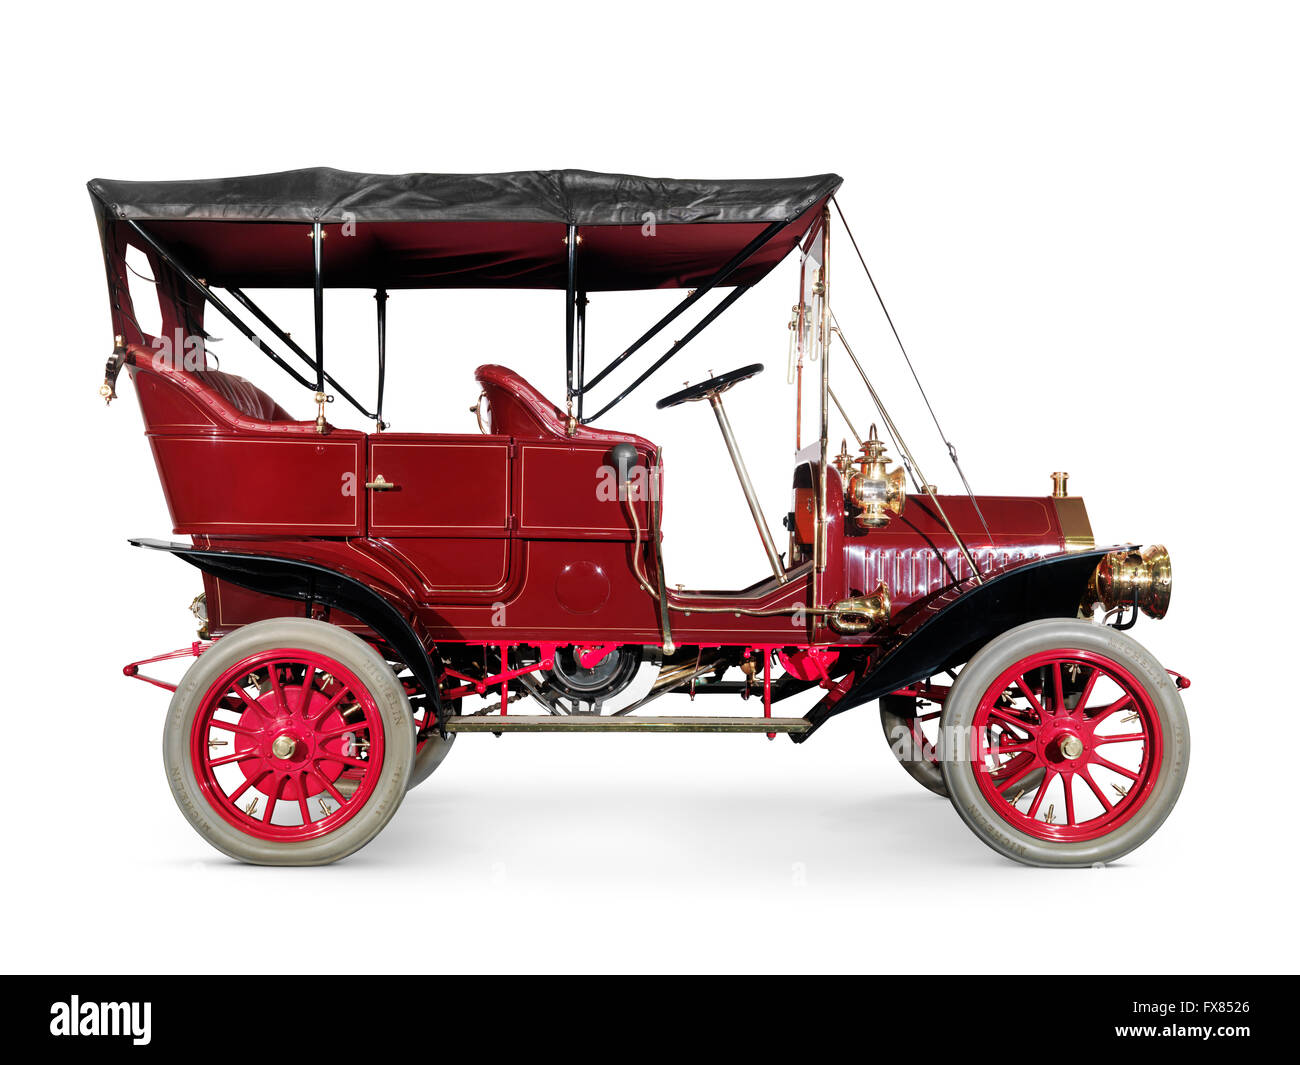 Red 1908 McLaughlin-Buick Model F antique vintage retro car side view isolated on white background with clipping - Stock Image